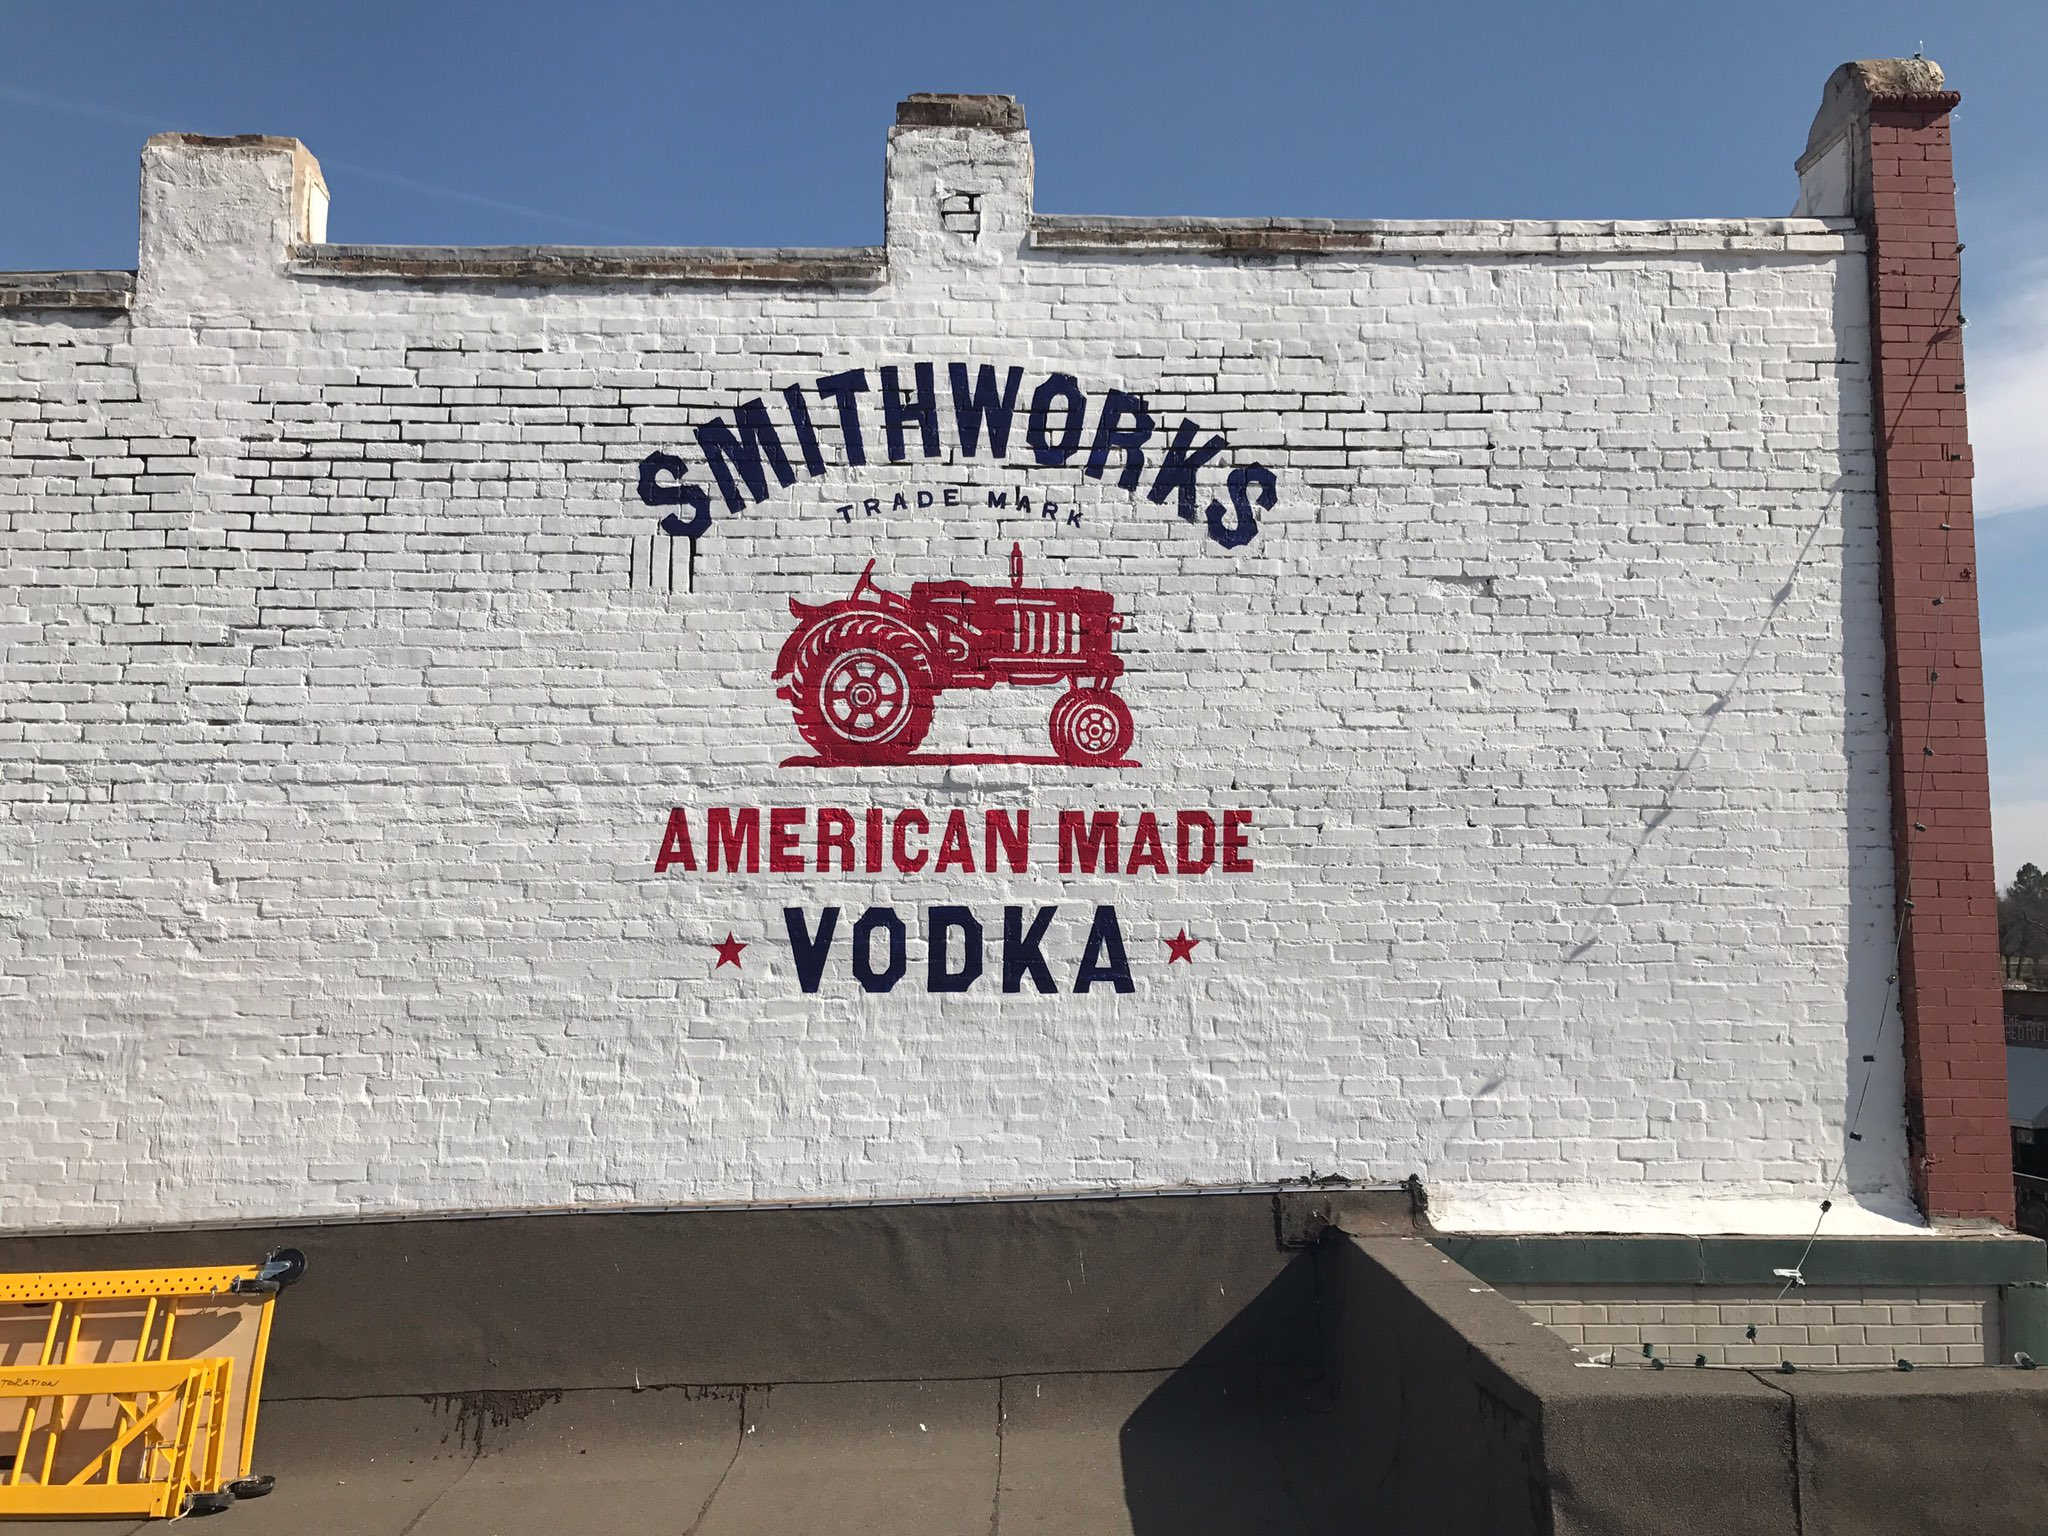 Decided to spruce up the spot in Tishomingo a little bit... what do y'all think?! @SmithworksVodka https://t.co/H2lmR2JTzv